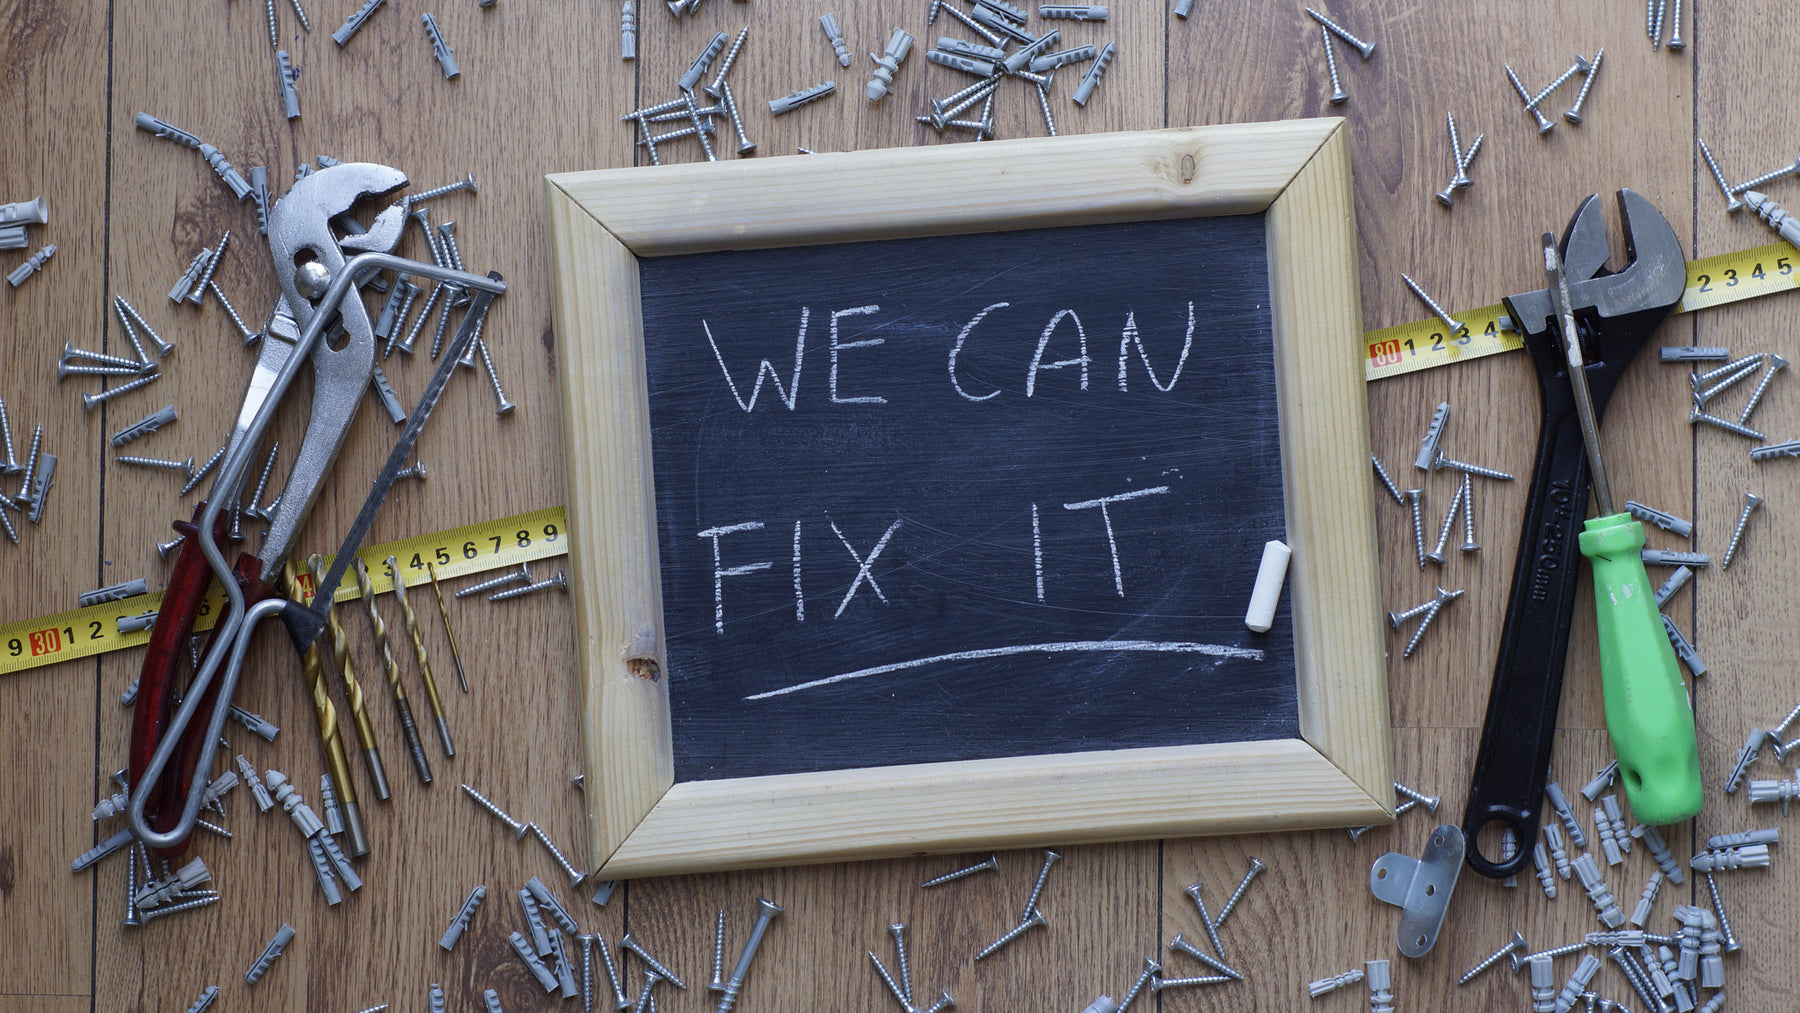 Can I Fix it Myself? - An Answer From The Service Company